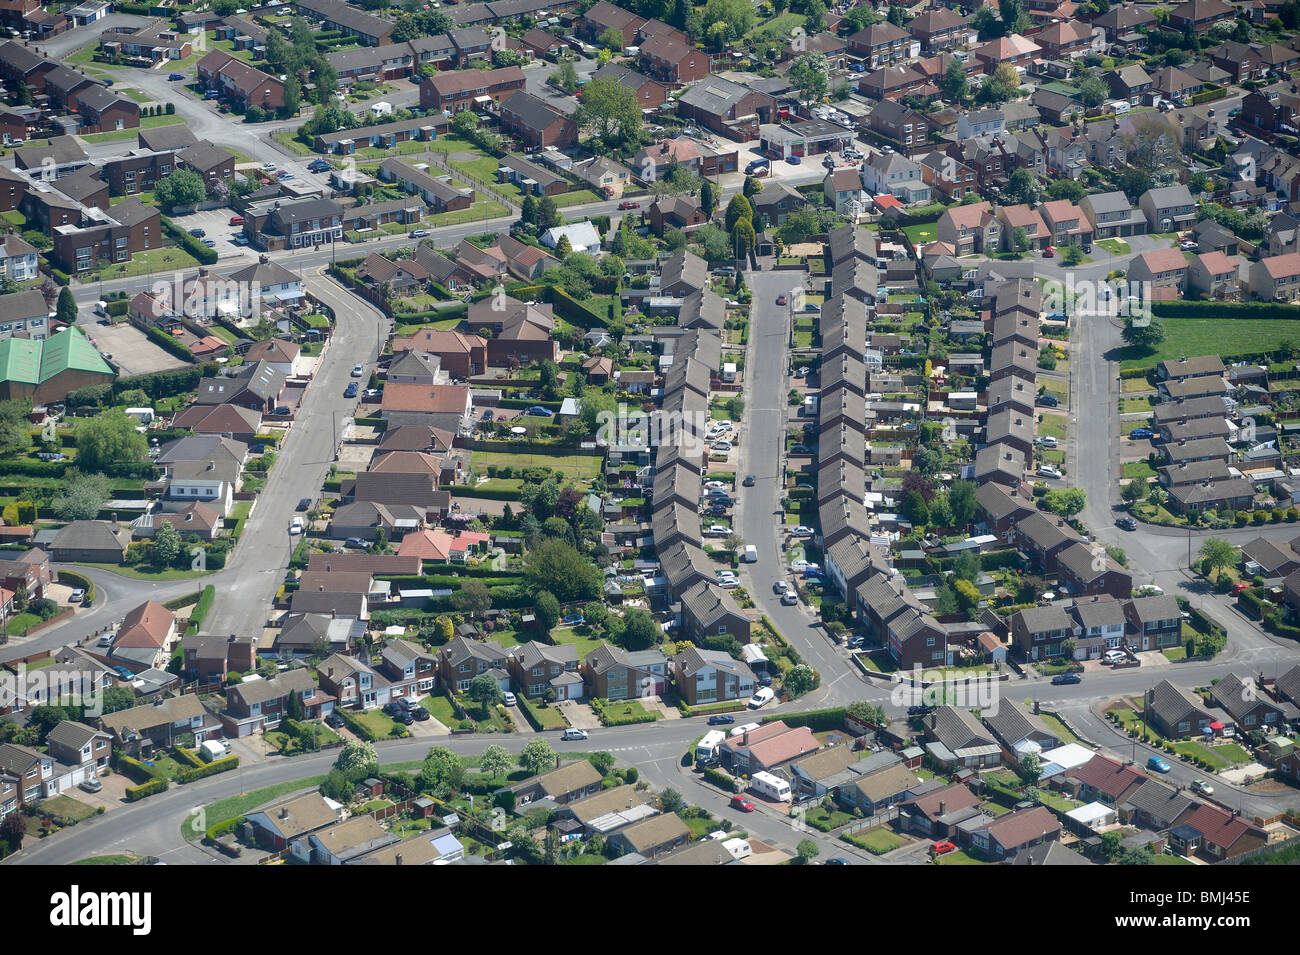 Suburban Britain, Nottinghamshire, East Midlands, England, UK - Stock Image